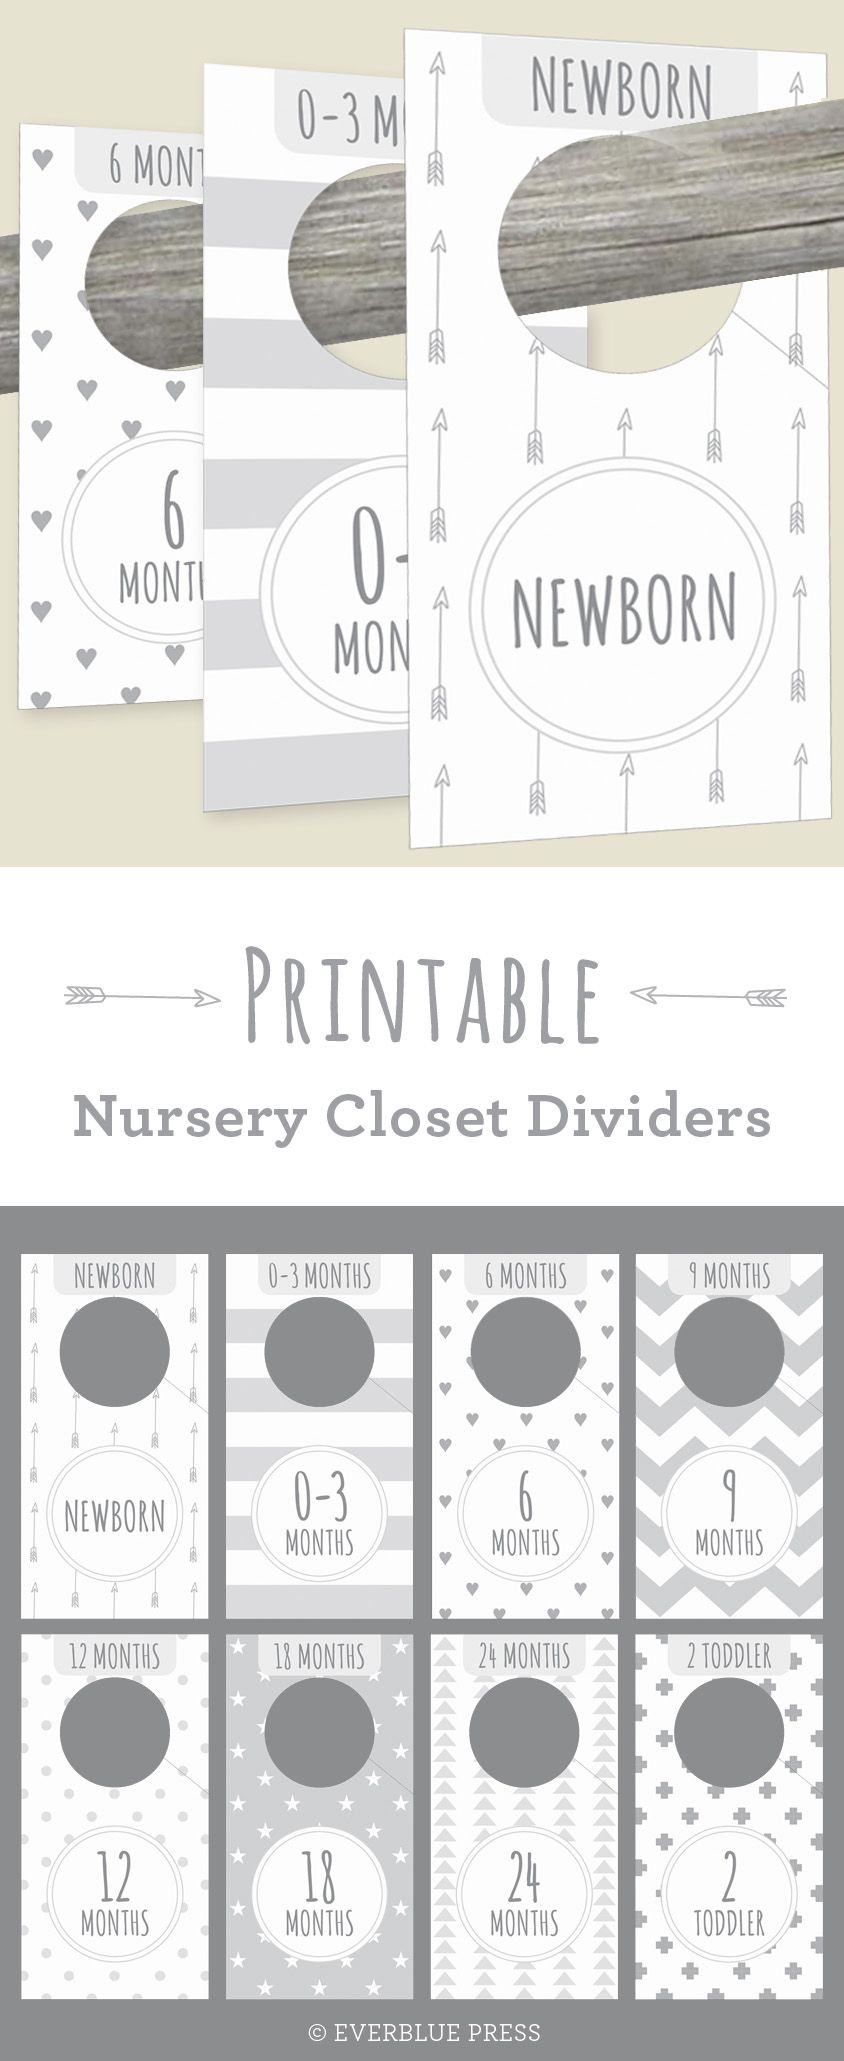 exceptional Printable Baby Closet Dividers Part - 3: These cute Printable Nursery Closet Dividers in gender neutral gray  patterns help organize your babyu0027s clothes! Newborn decor from Everblue  Press on etsy